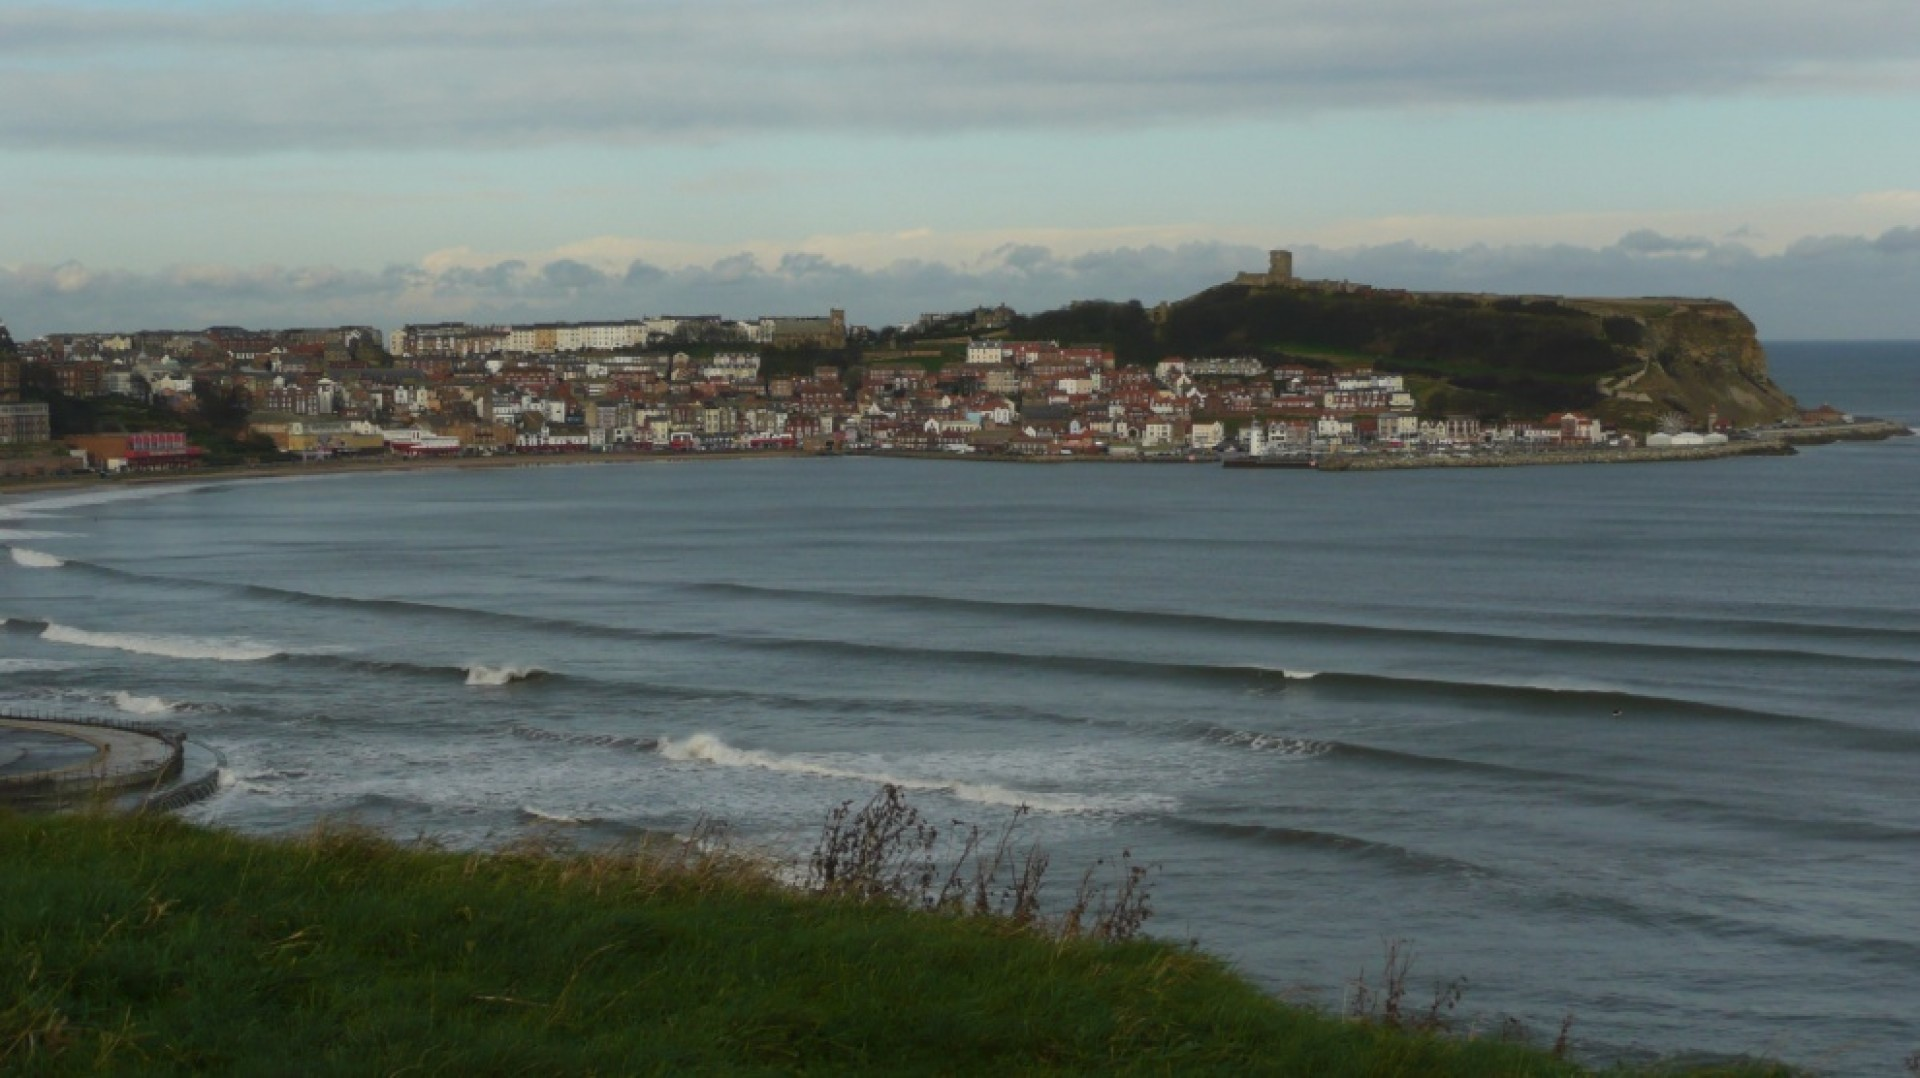 Bincey's photo of Scarborough - South Bay